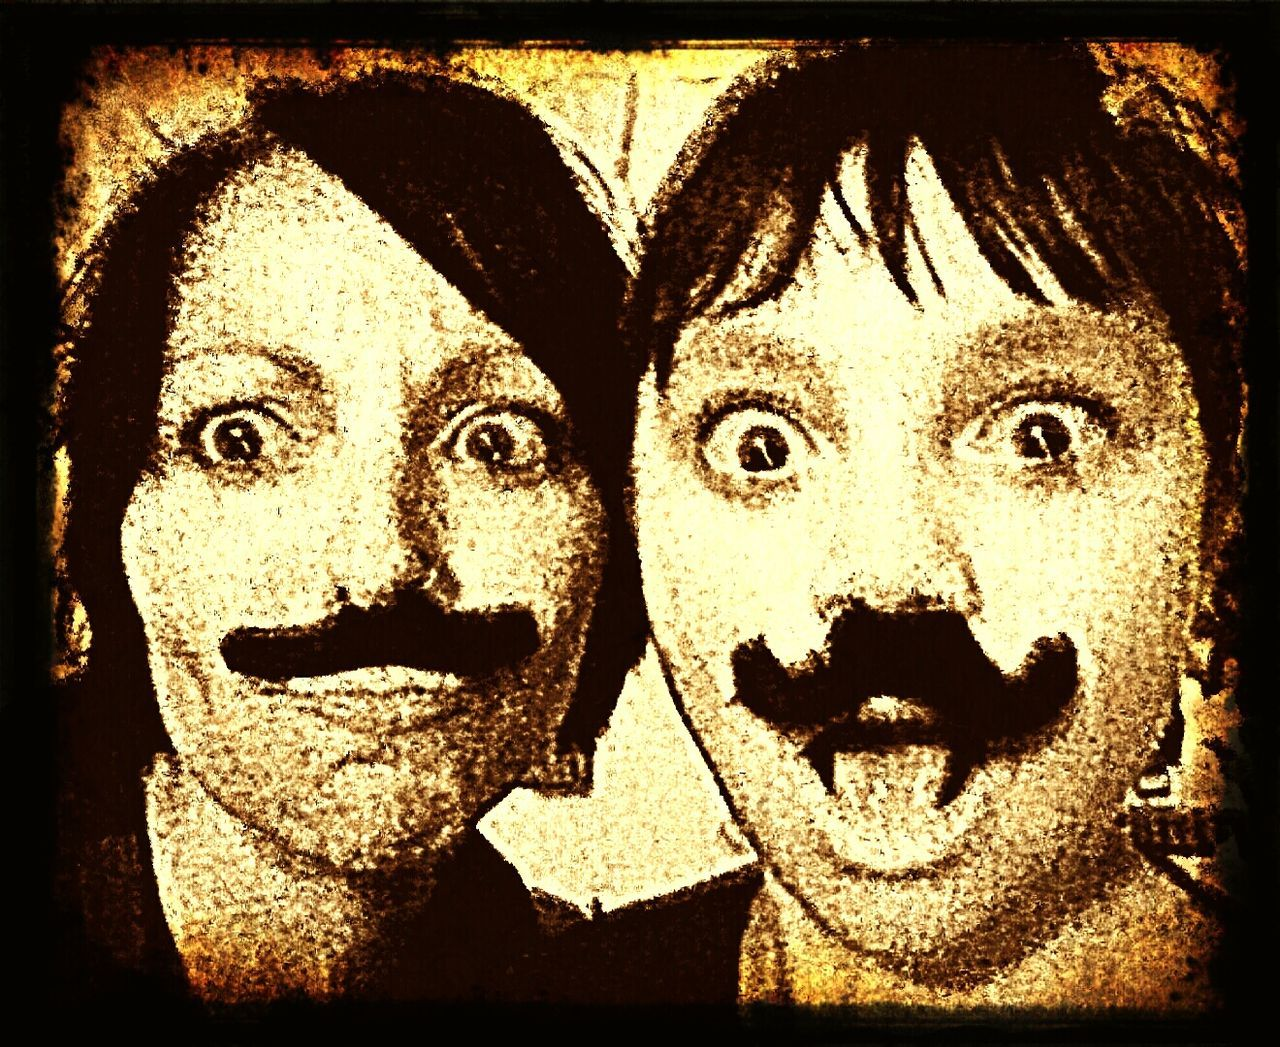 ...silly moustaches... The Portraitist - 2016 EyeEm Awards Moustache ♥ Fake Moustaches Fake Moustache Funny Faces Mom And Son 💚 Hanging Out Cheese! Enjoying Life Hanging Out Gotta Be Silly Sometimes!!! 😝 Sepia Photography Sepia Portrait Old Timey Vintage Fx Vintage Filter